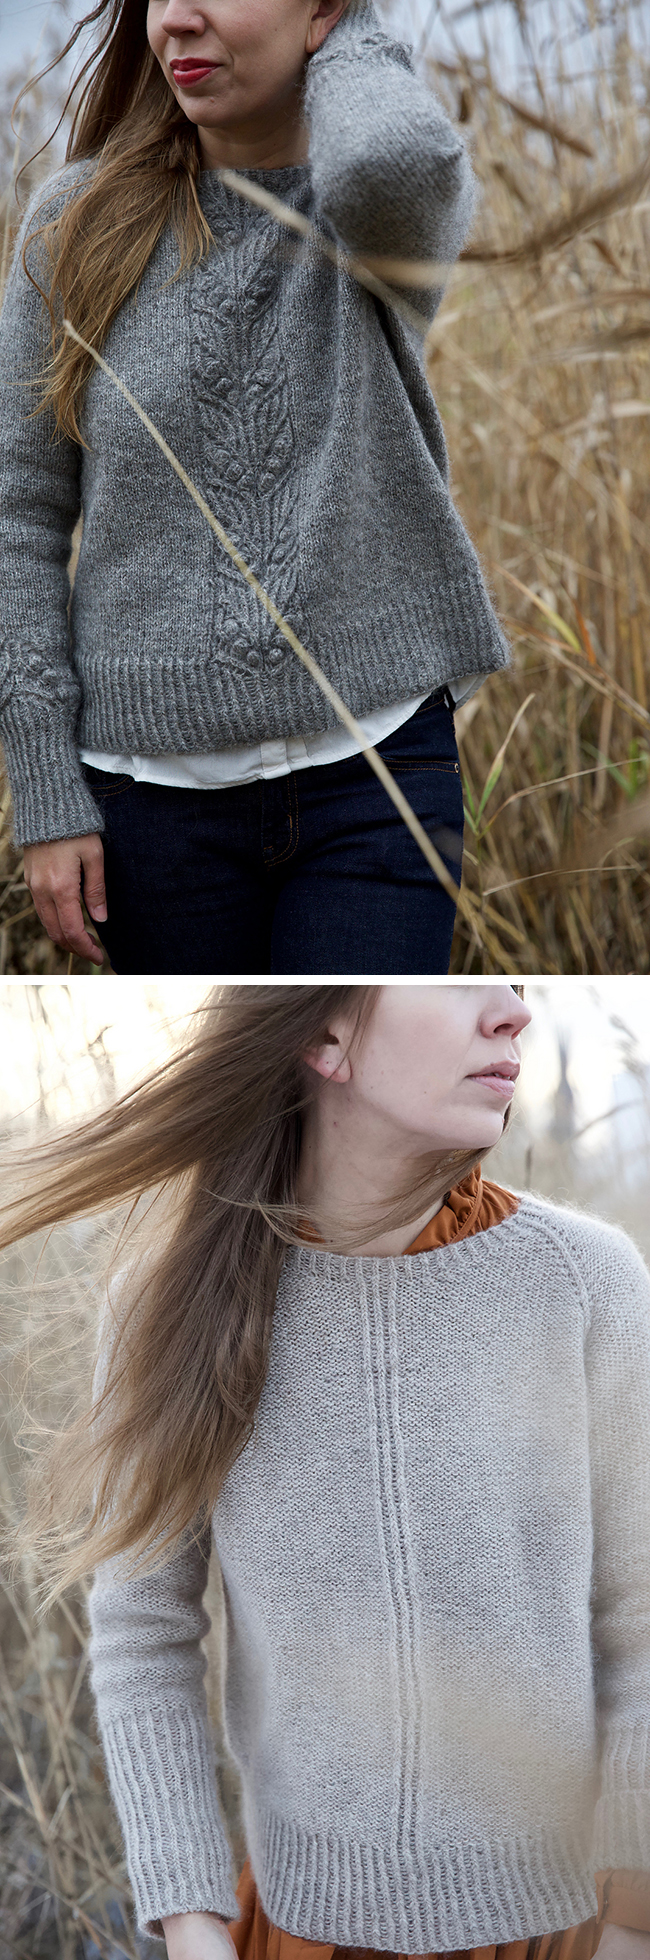 New Favorites: Leeni Hoi's halos (sweater knitting patterns)